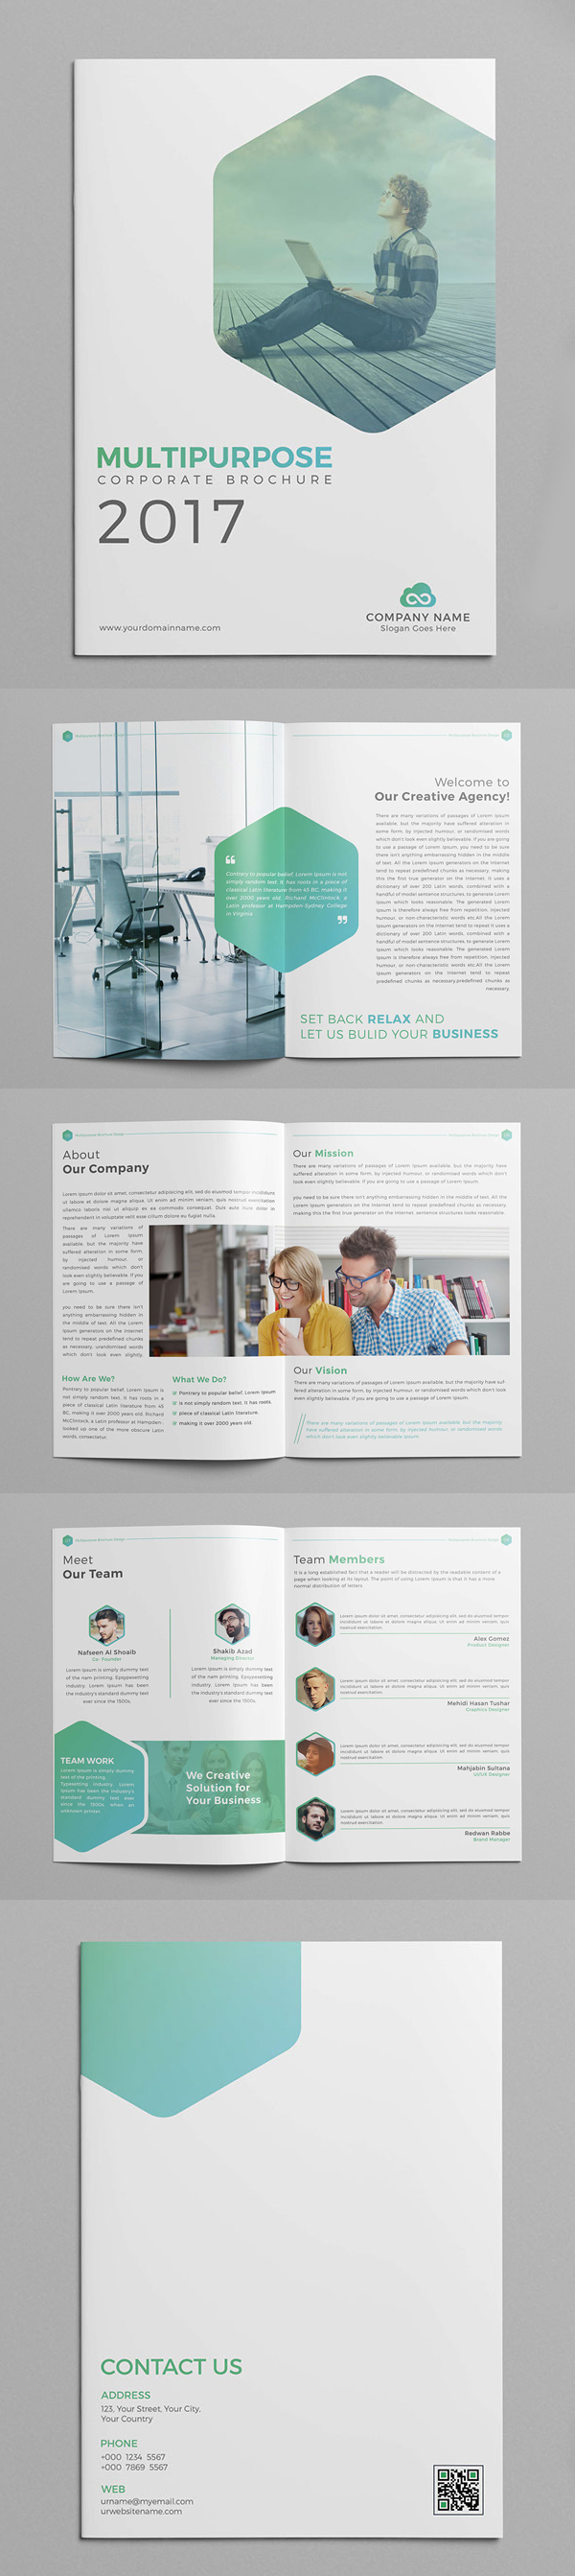 Multipurpose Company Profile Brochure Template